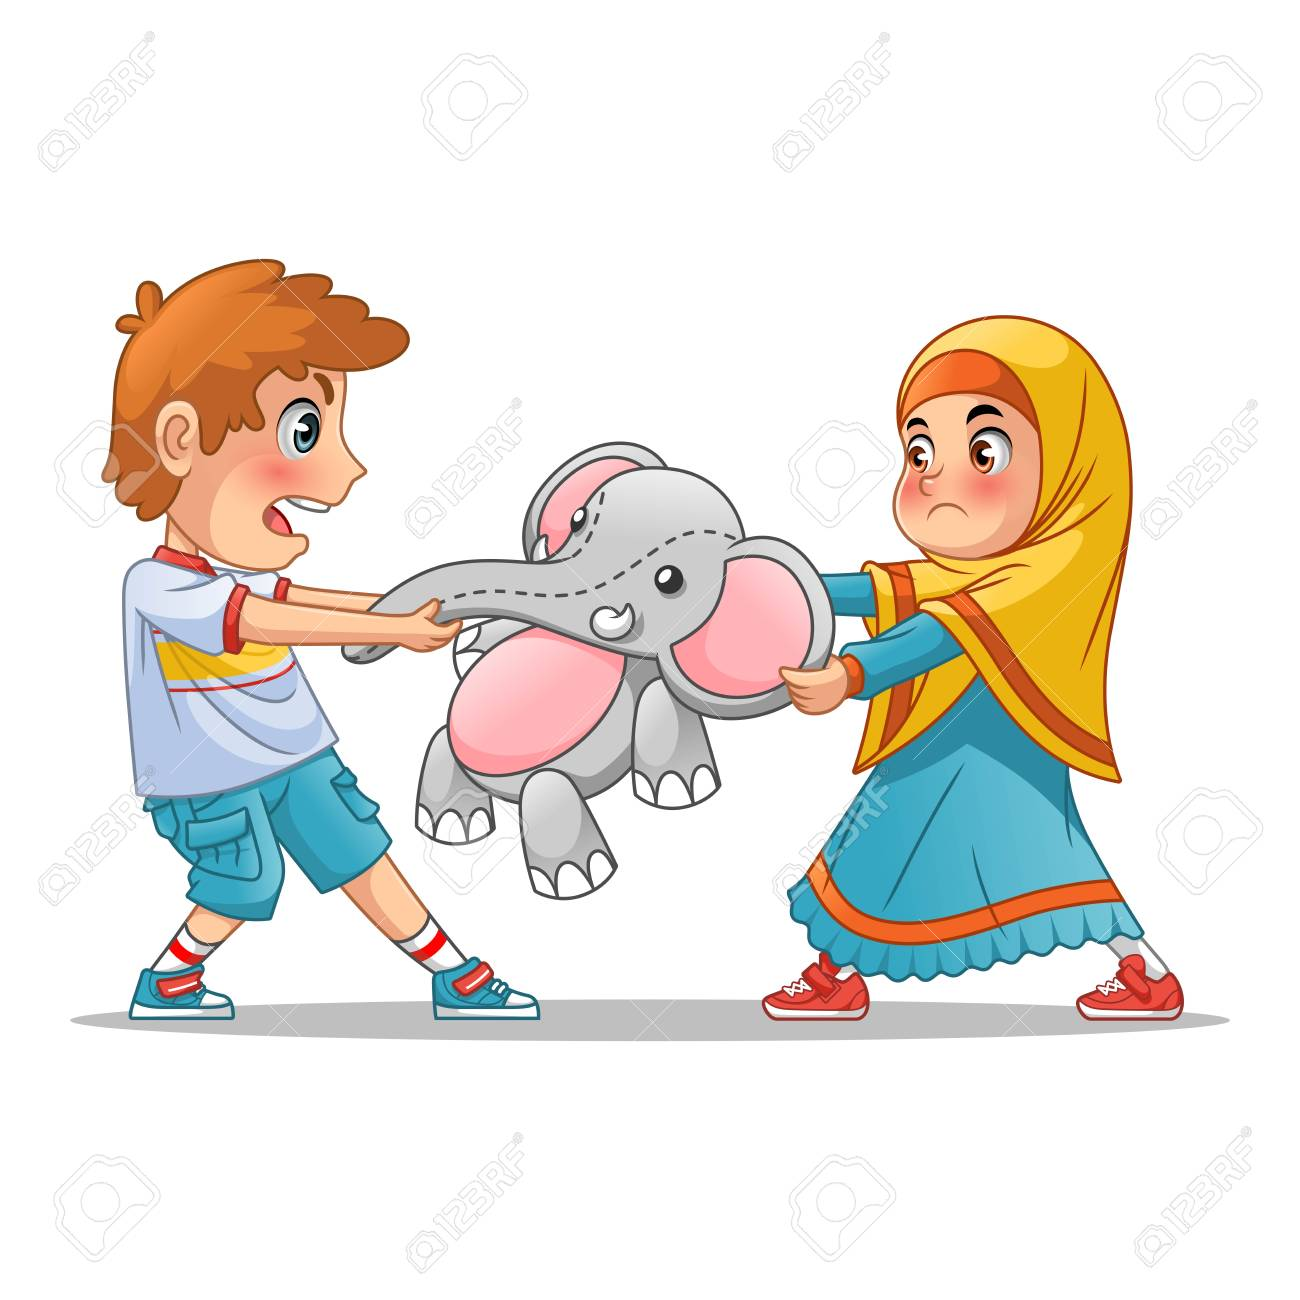 muslim girl and boy fighting over a doll cartoon character design